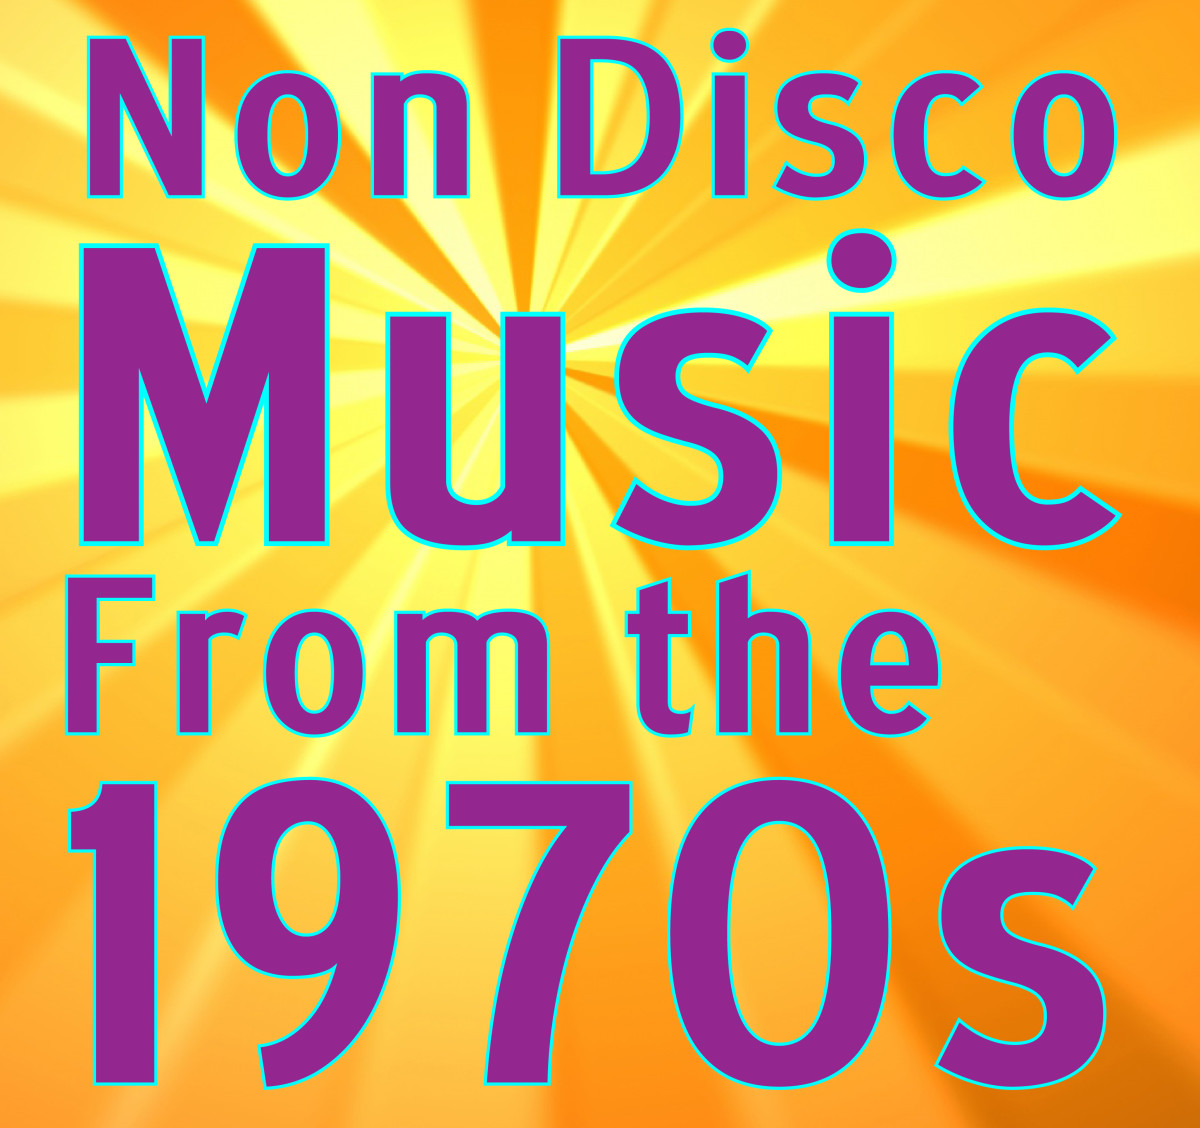 Non-Disco Music From the 1970s | Spinditty